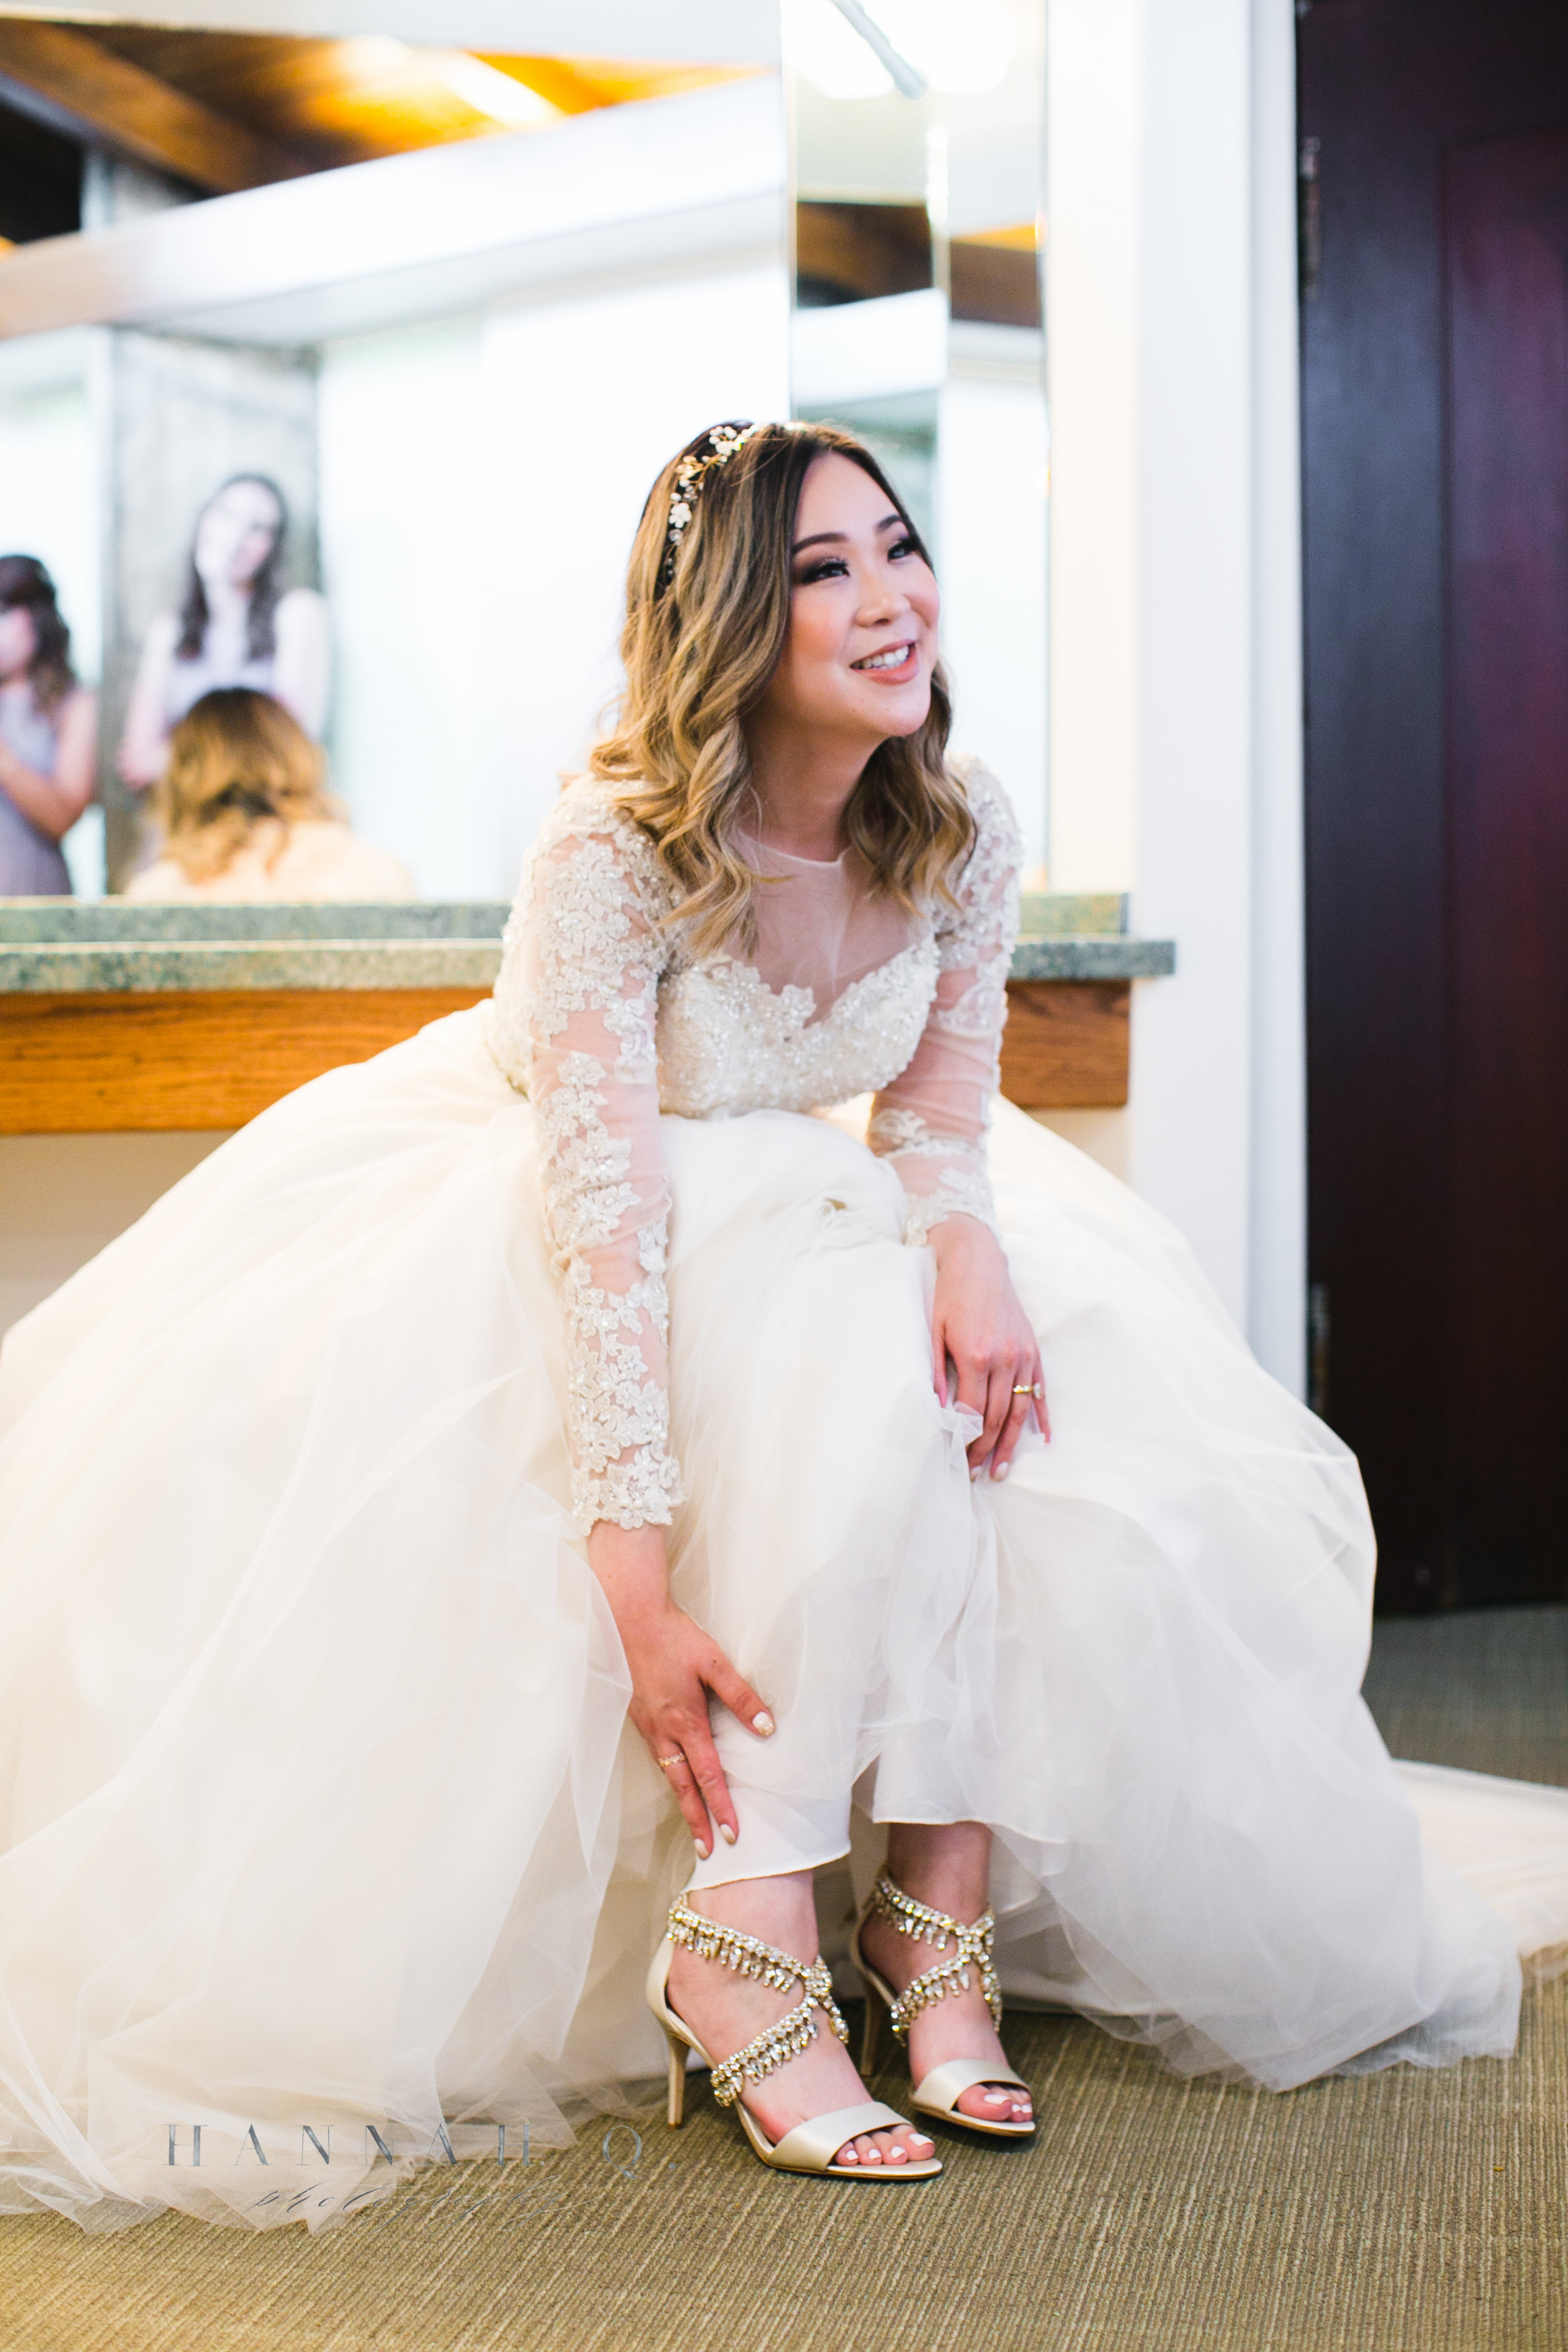 Once the bride and groom completed the majority of their getting ready at Miyako Hotel, we moved to Wayfarer's Chapel. Tara just put on these gorgeous bedazzled shoes in the powder room.